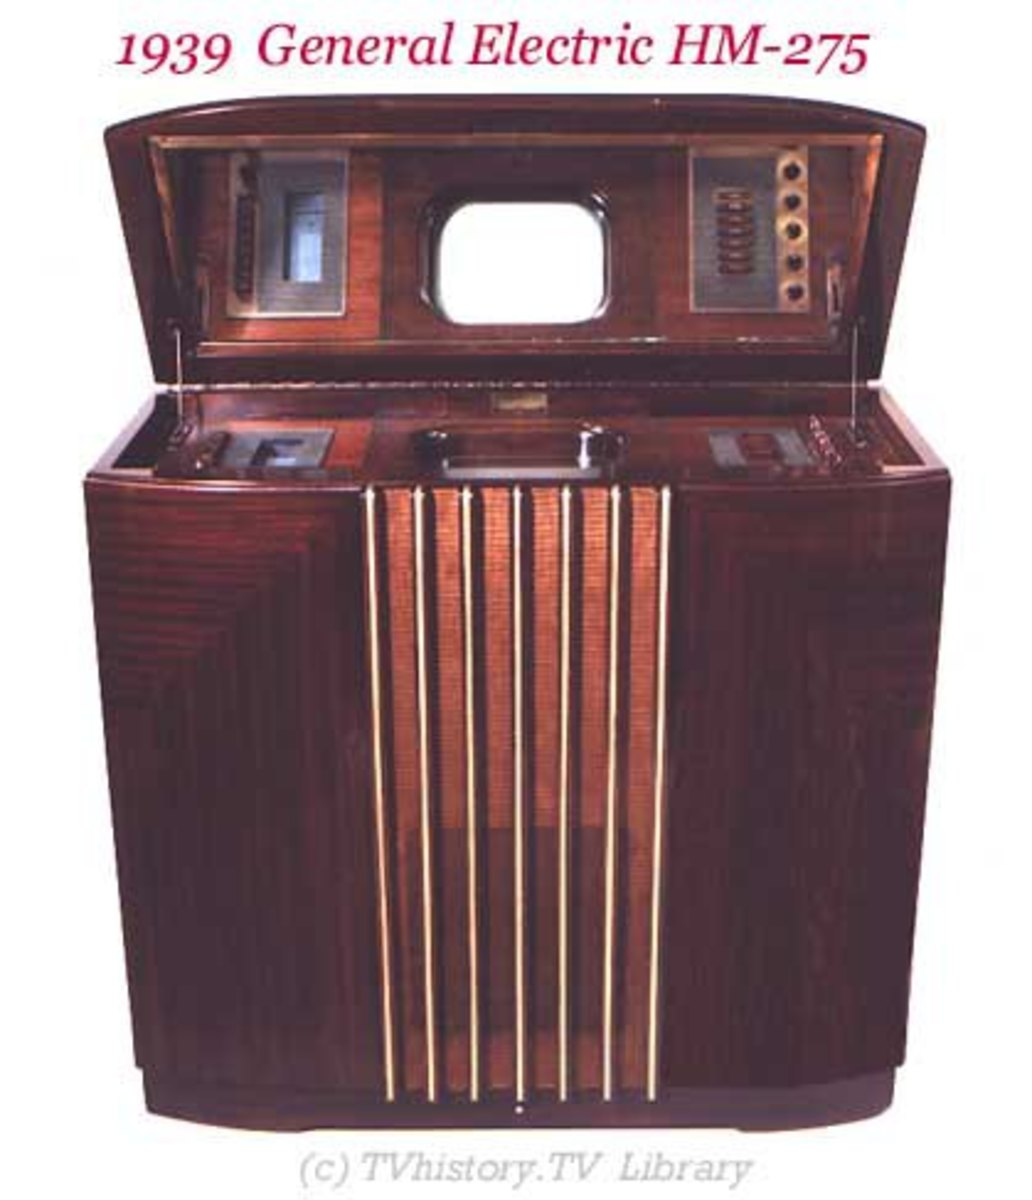 The first TV set.